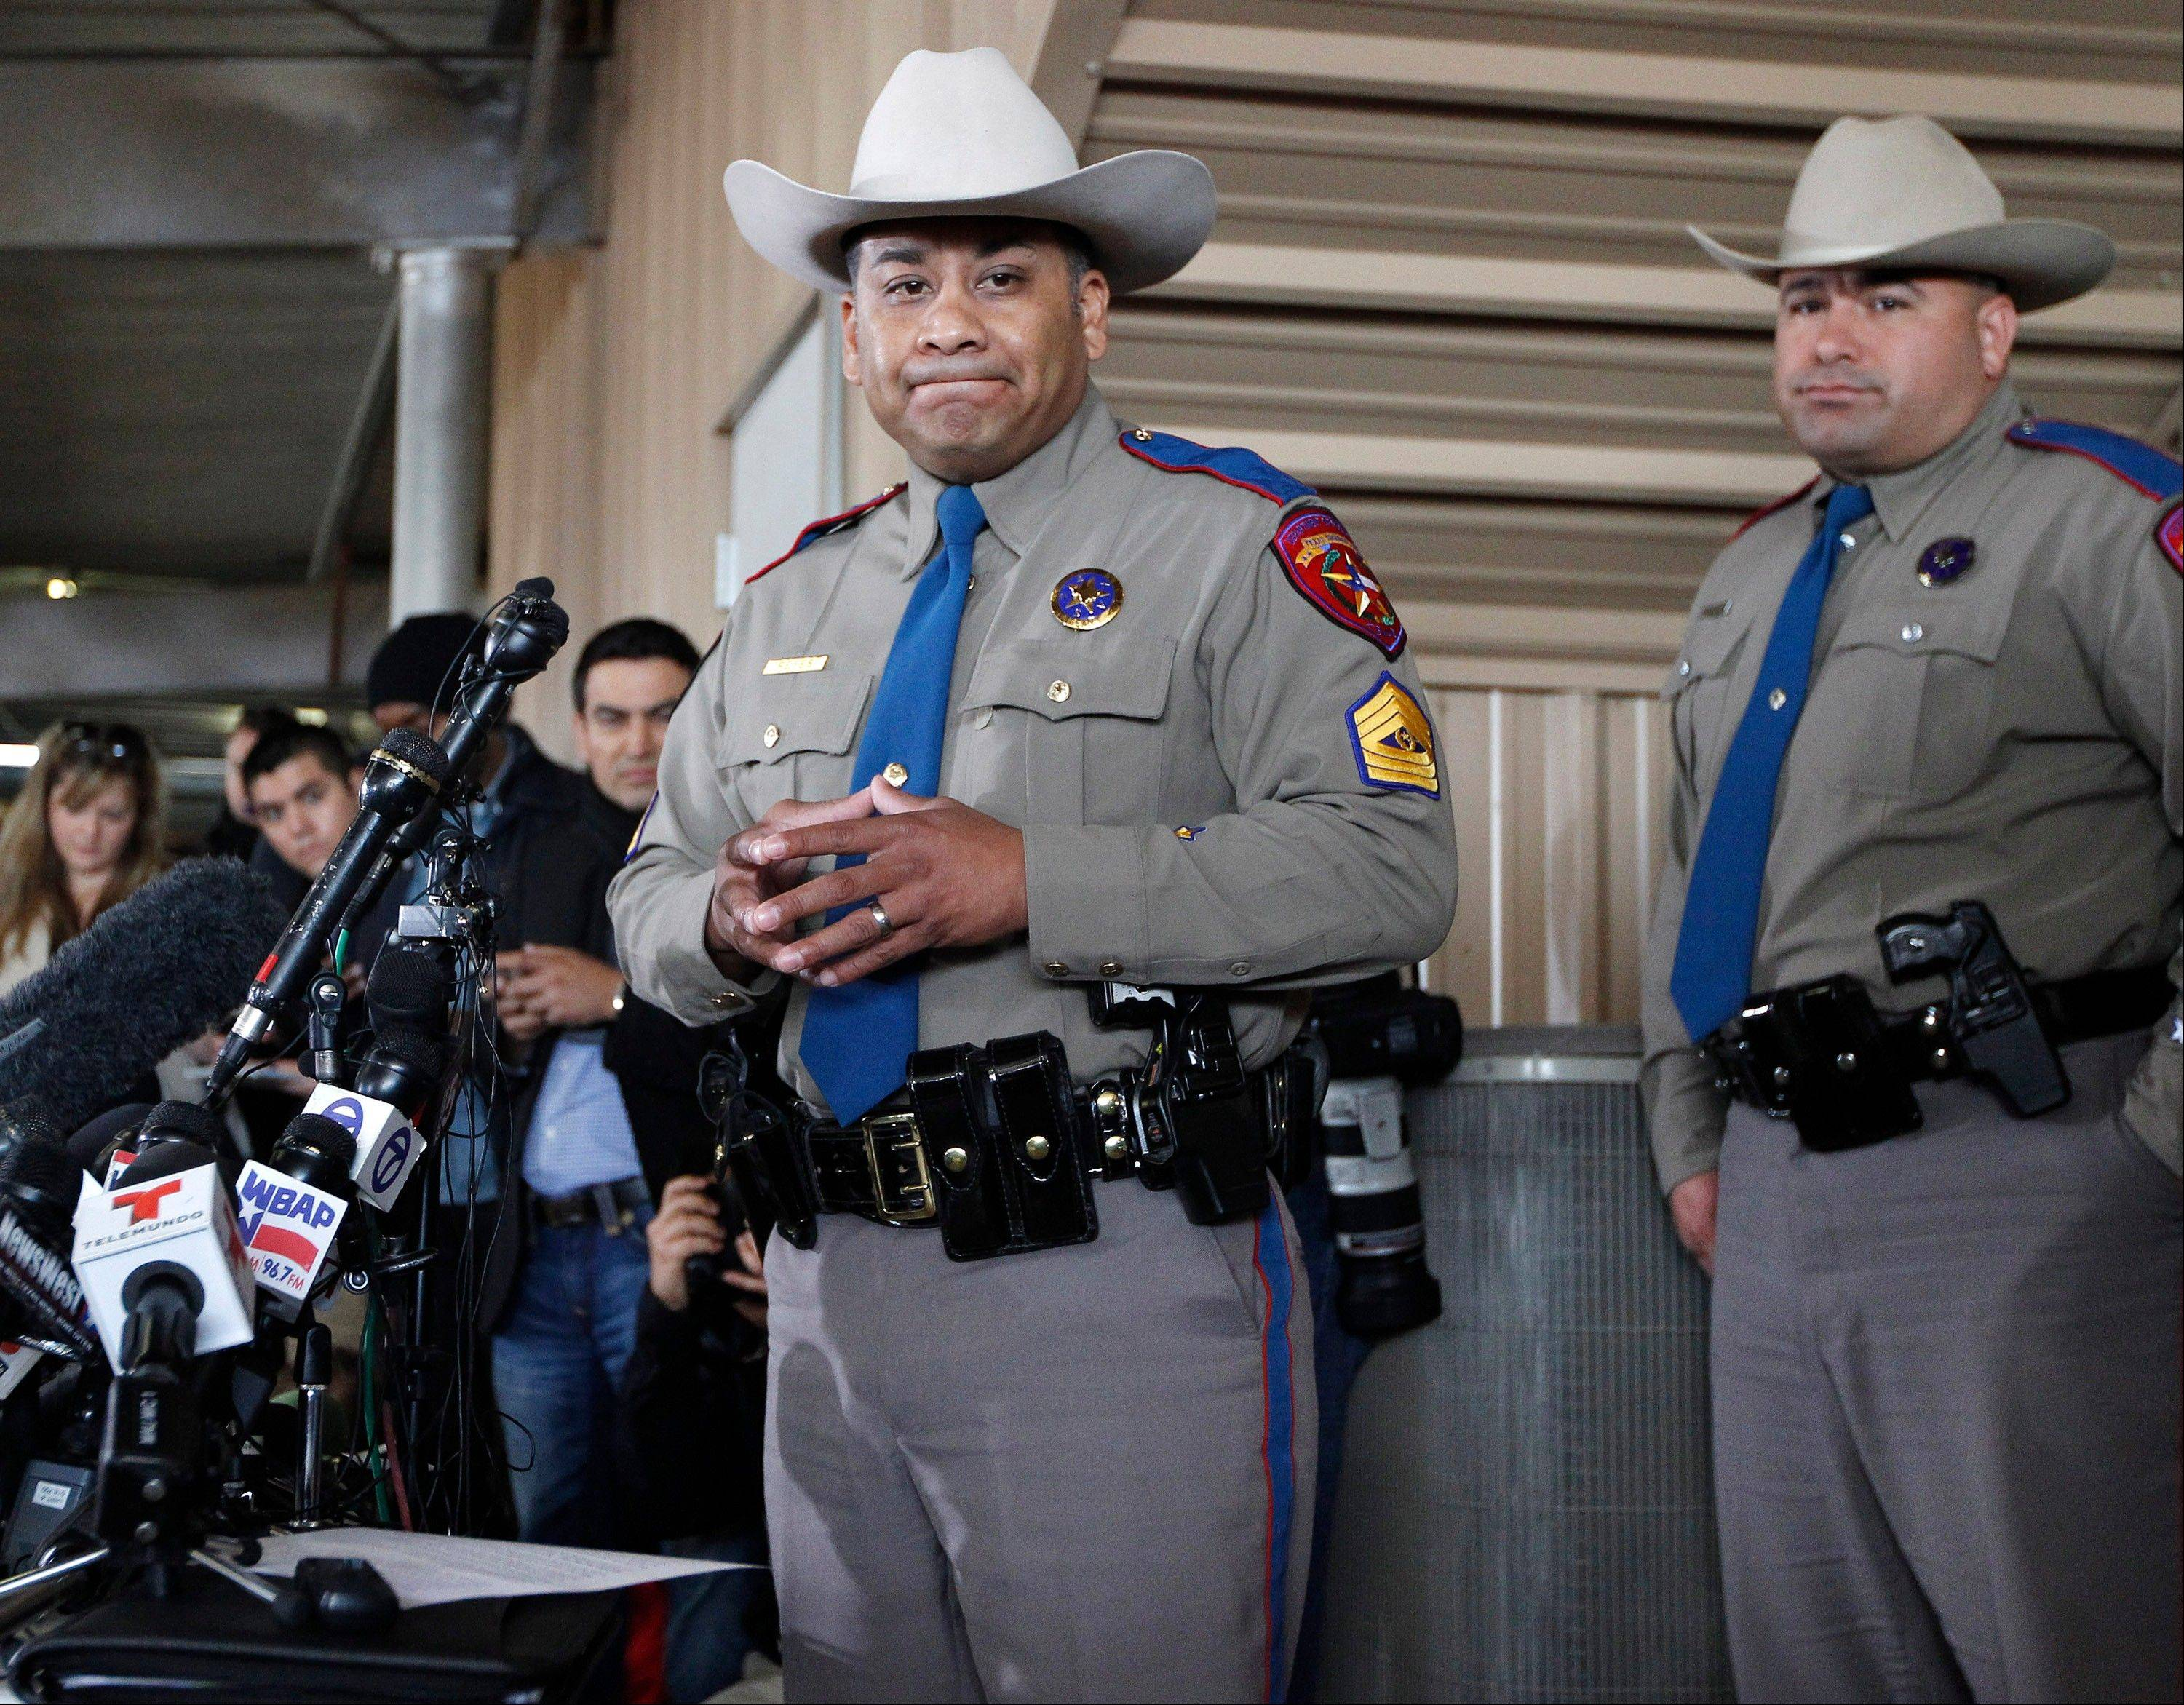 Texas Department of Public Safety Sgt. Jason Reyes, left, and Trooper Noey Fernandez inform reporters that the death toll and the number of destroyed homes during a news conference on Friday April 19, 2013 in West, Texas. The bodies of 12 people have been recovered after an enormous Texas fertilizer plant explosion that demolished surrounding neighborhoods for blocks and left about 200 other people injured, authorities said Friday.